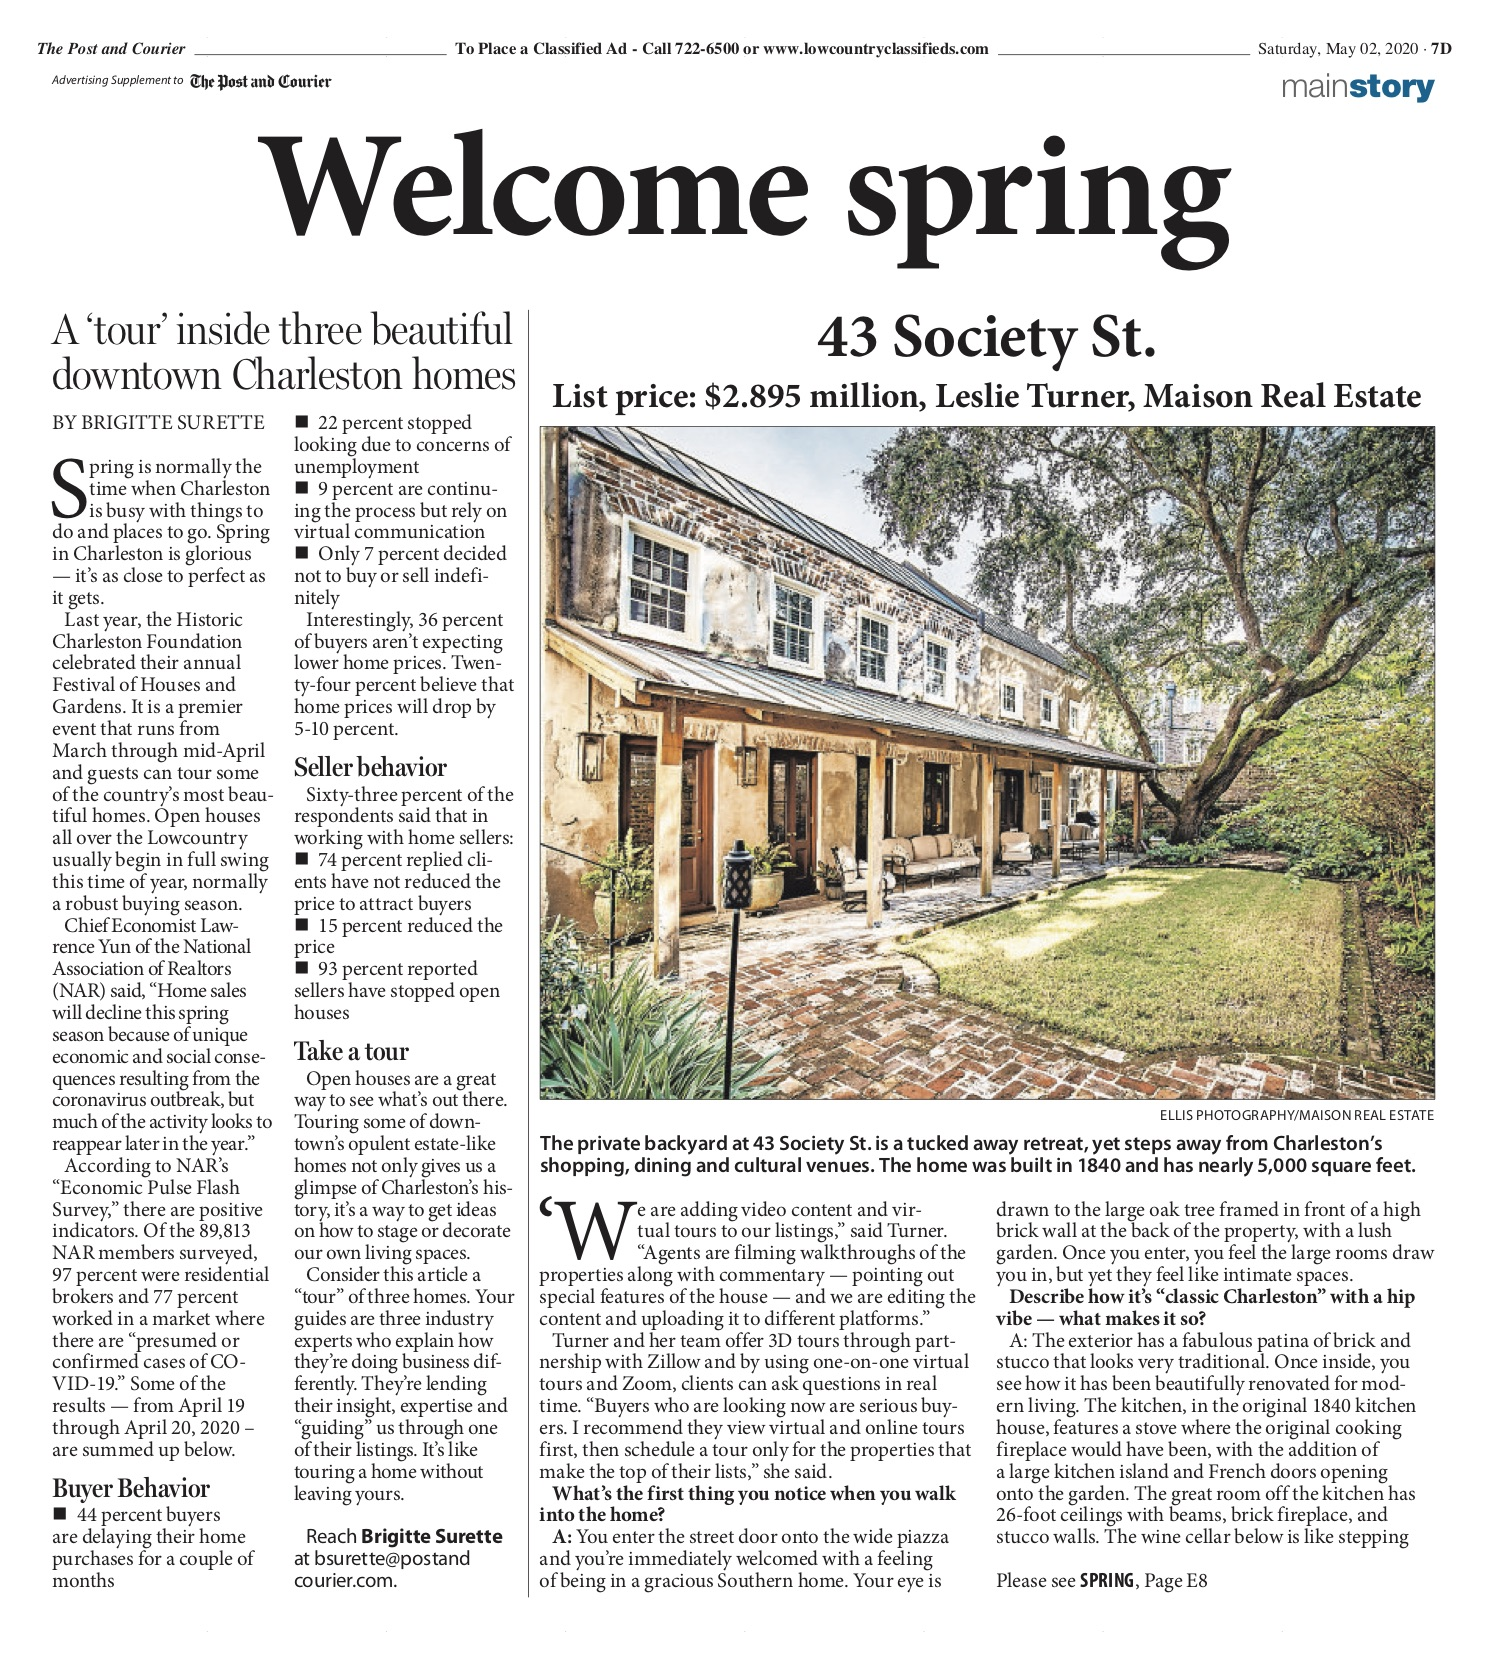 43 Society featured in Post and Courier